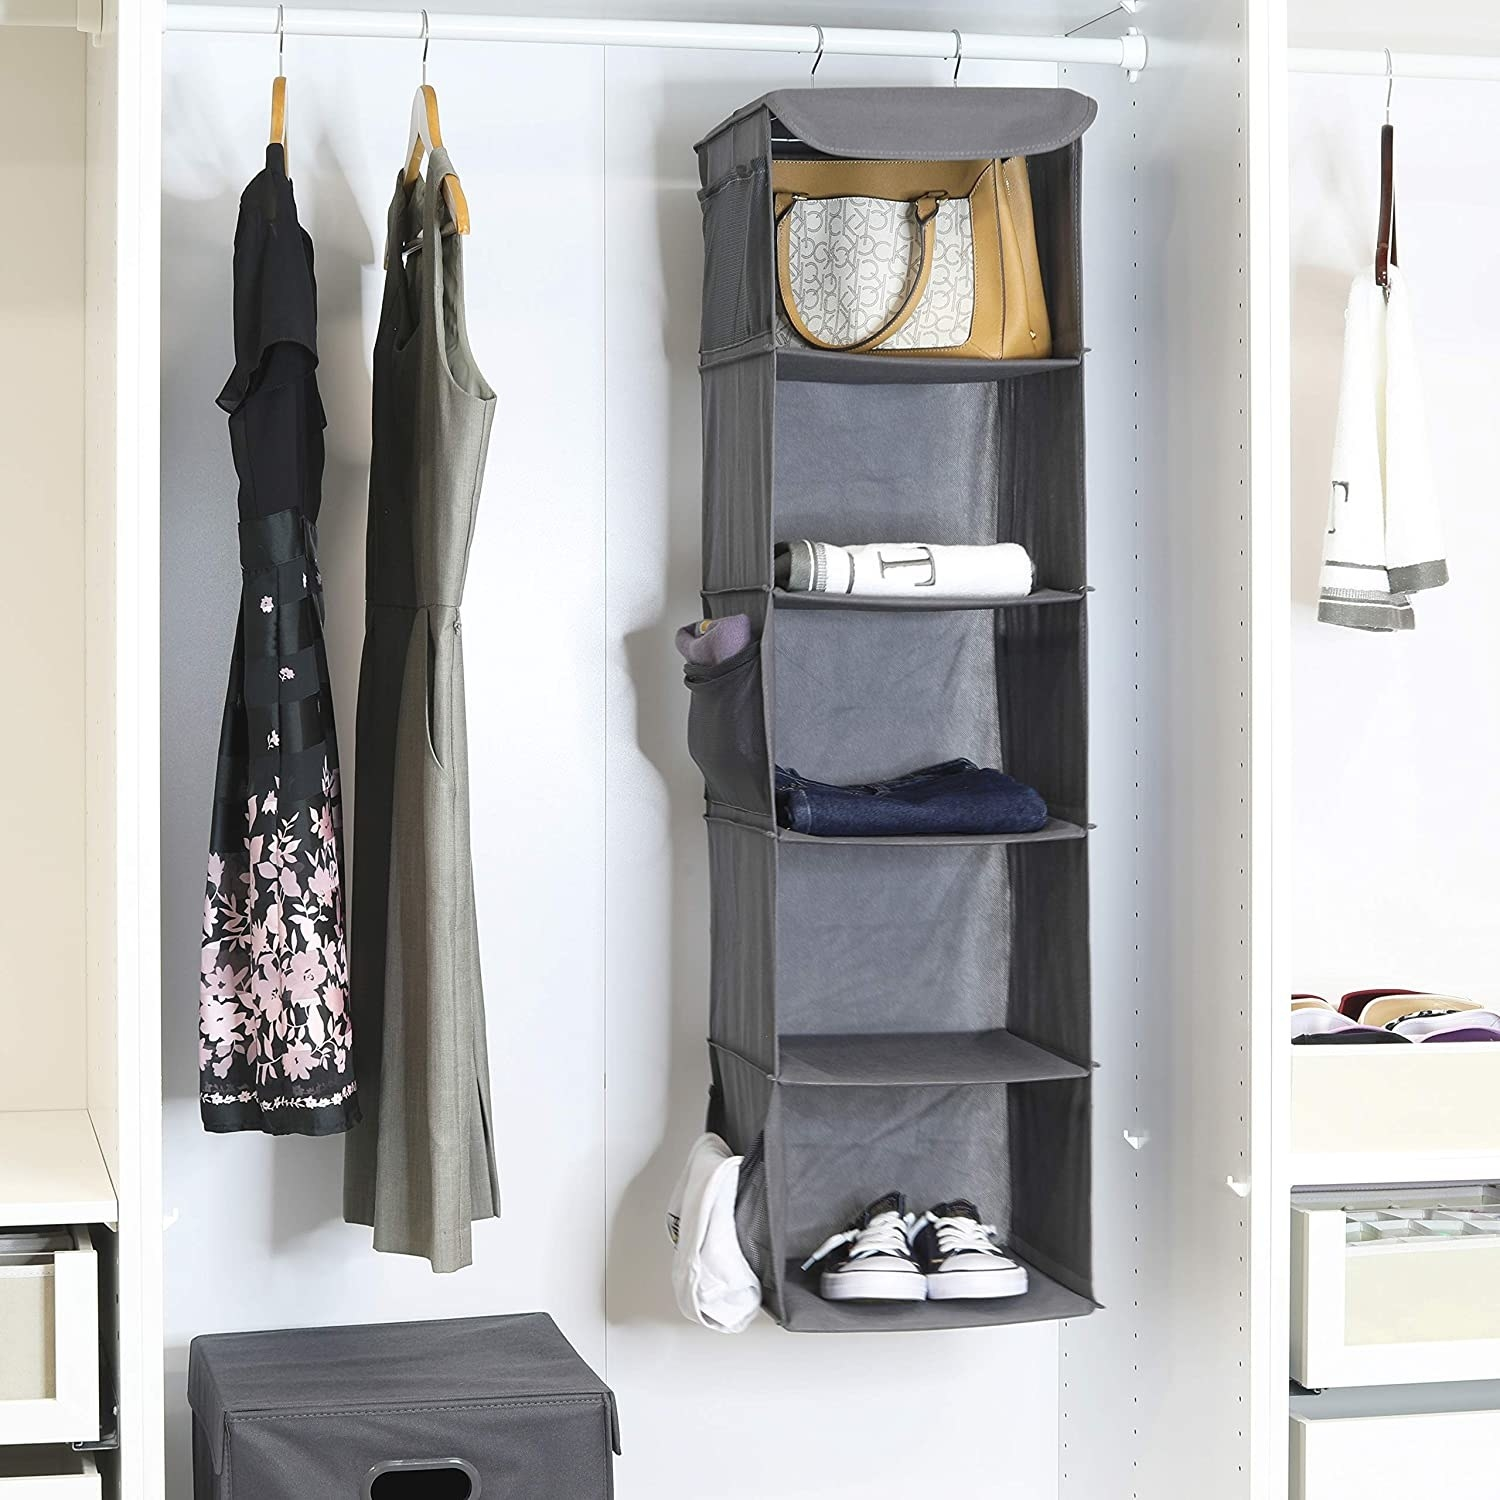 The closet organizer hanging in a closet with shoes, towels, and handbags on its shelves